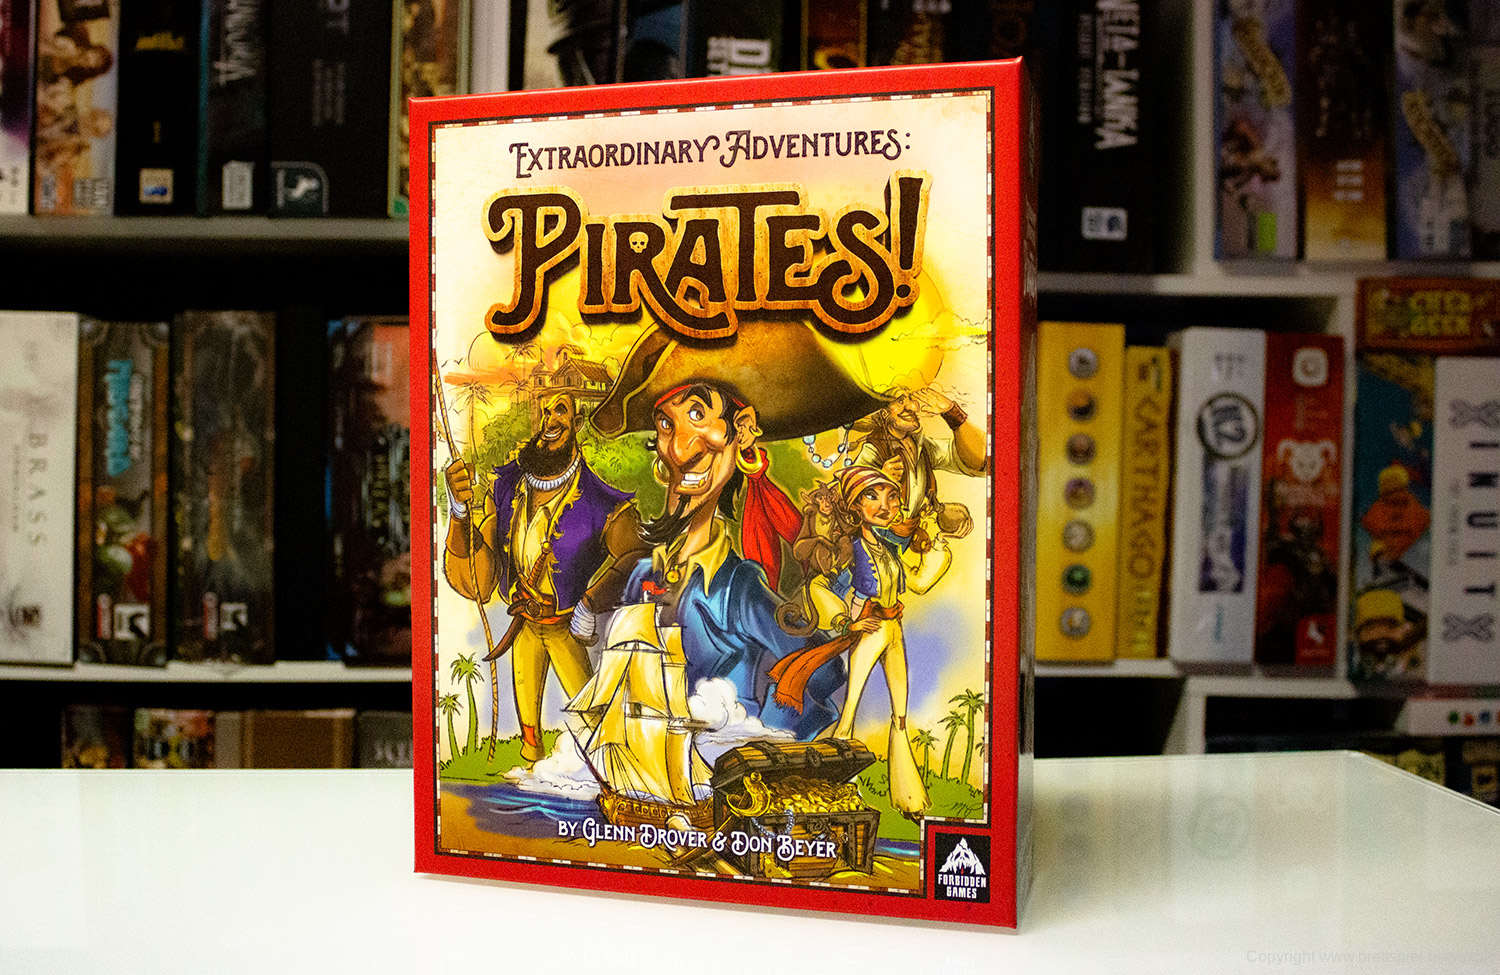 EXTRAORDINARY ADVENTURES: PIRATES // Erste Bilder